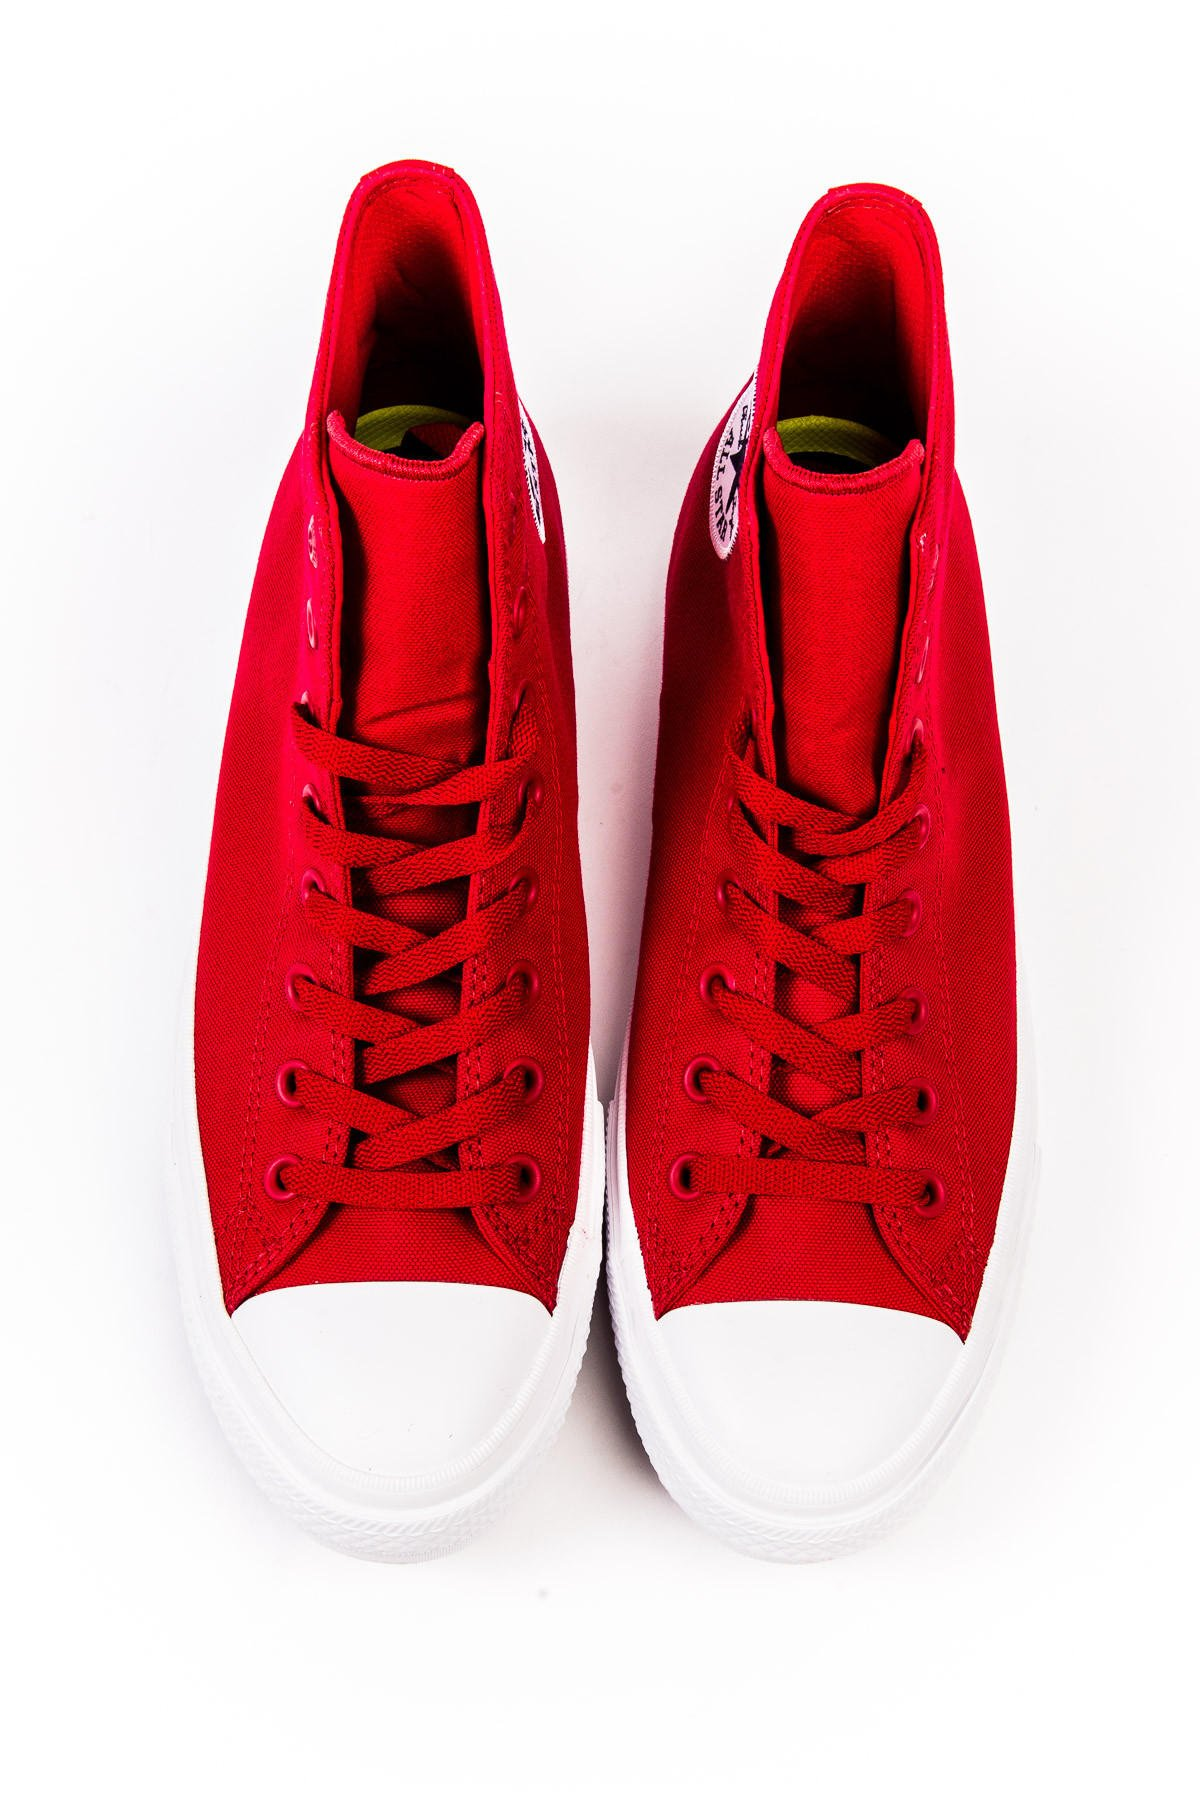 Converse Chuck Taylor All Star II Red Hi from Probus  44e115d96